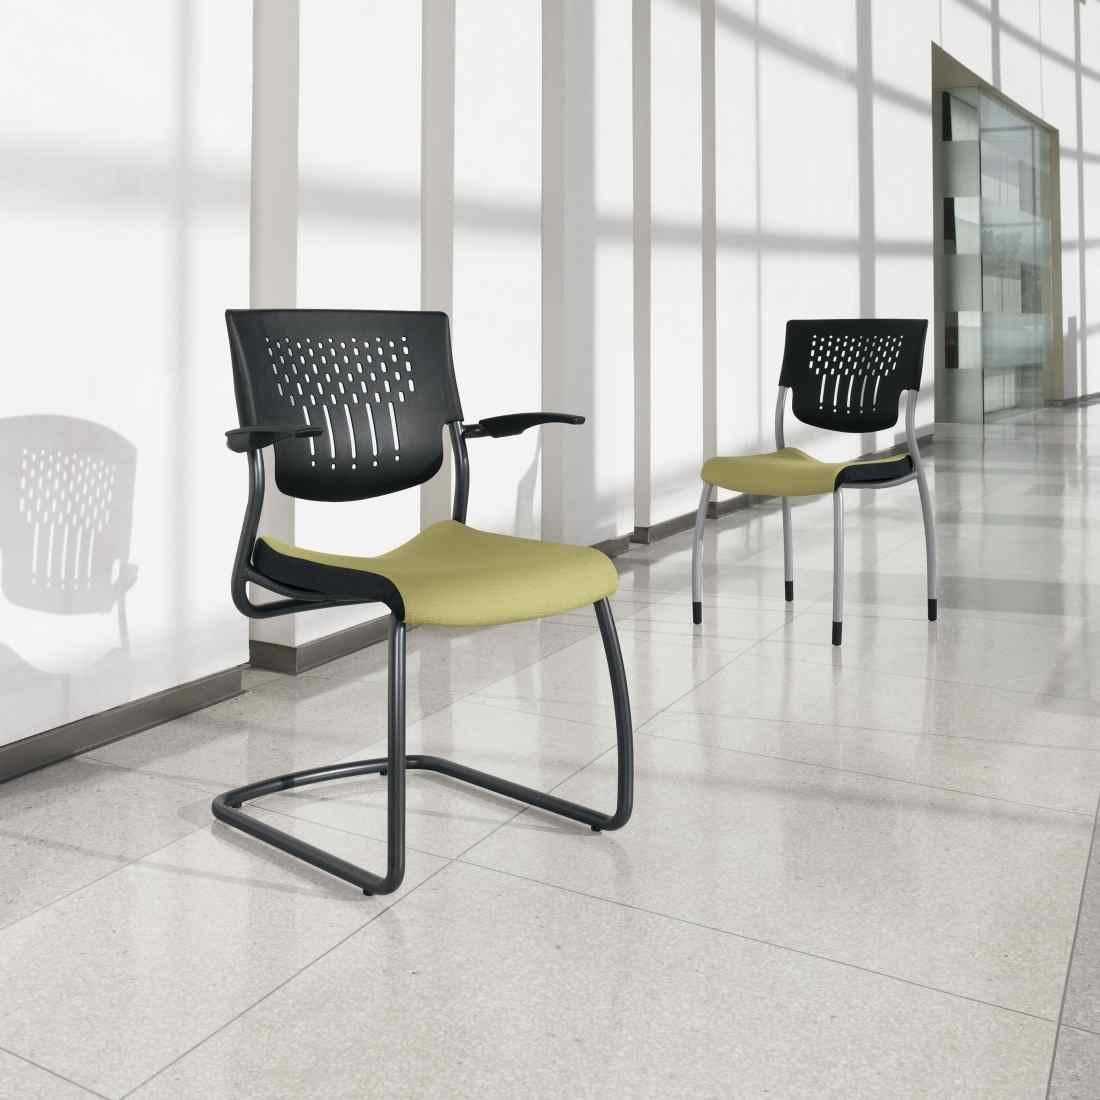 1100x1100 Buy Rite Business Furnishings Office Furniture Vancouver Pic 6E6951 Recommended Modern